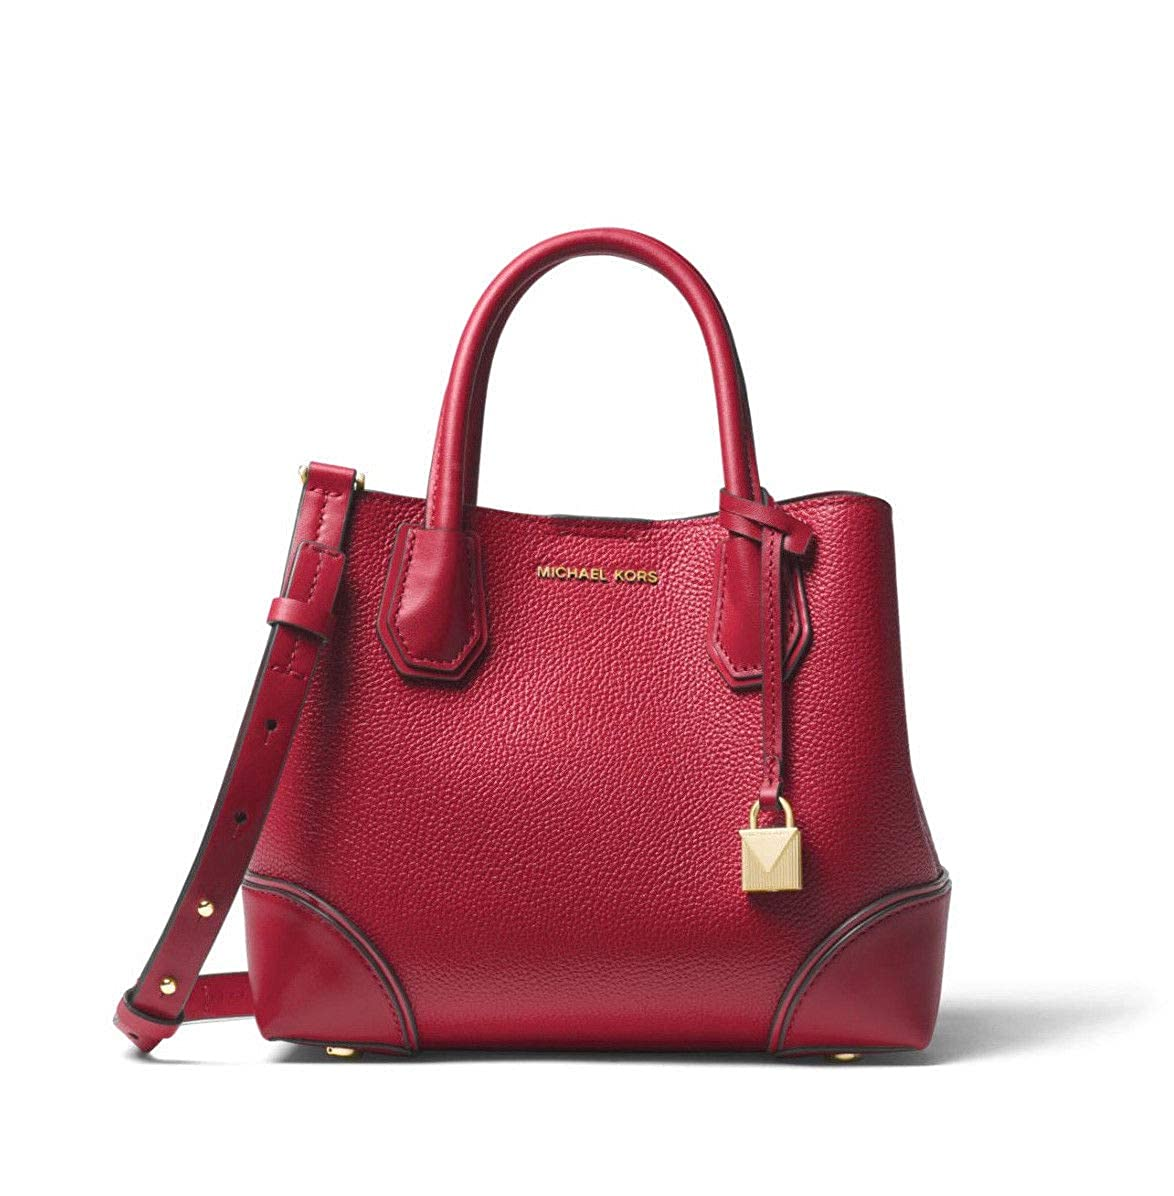 0176e738eed9 MICHAEL Michael Kors Mercer Gallery Small Pebbled Leather Satchel in Luxe  Teal  Handbags  Amazon.com